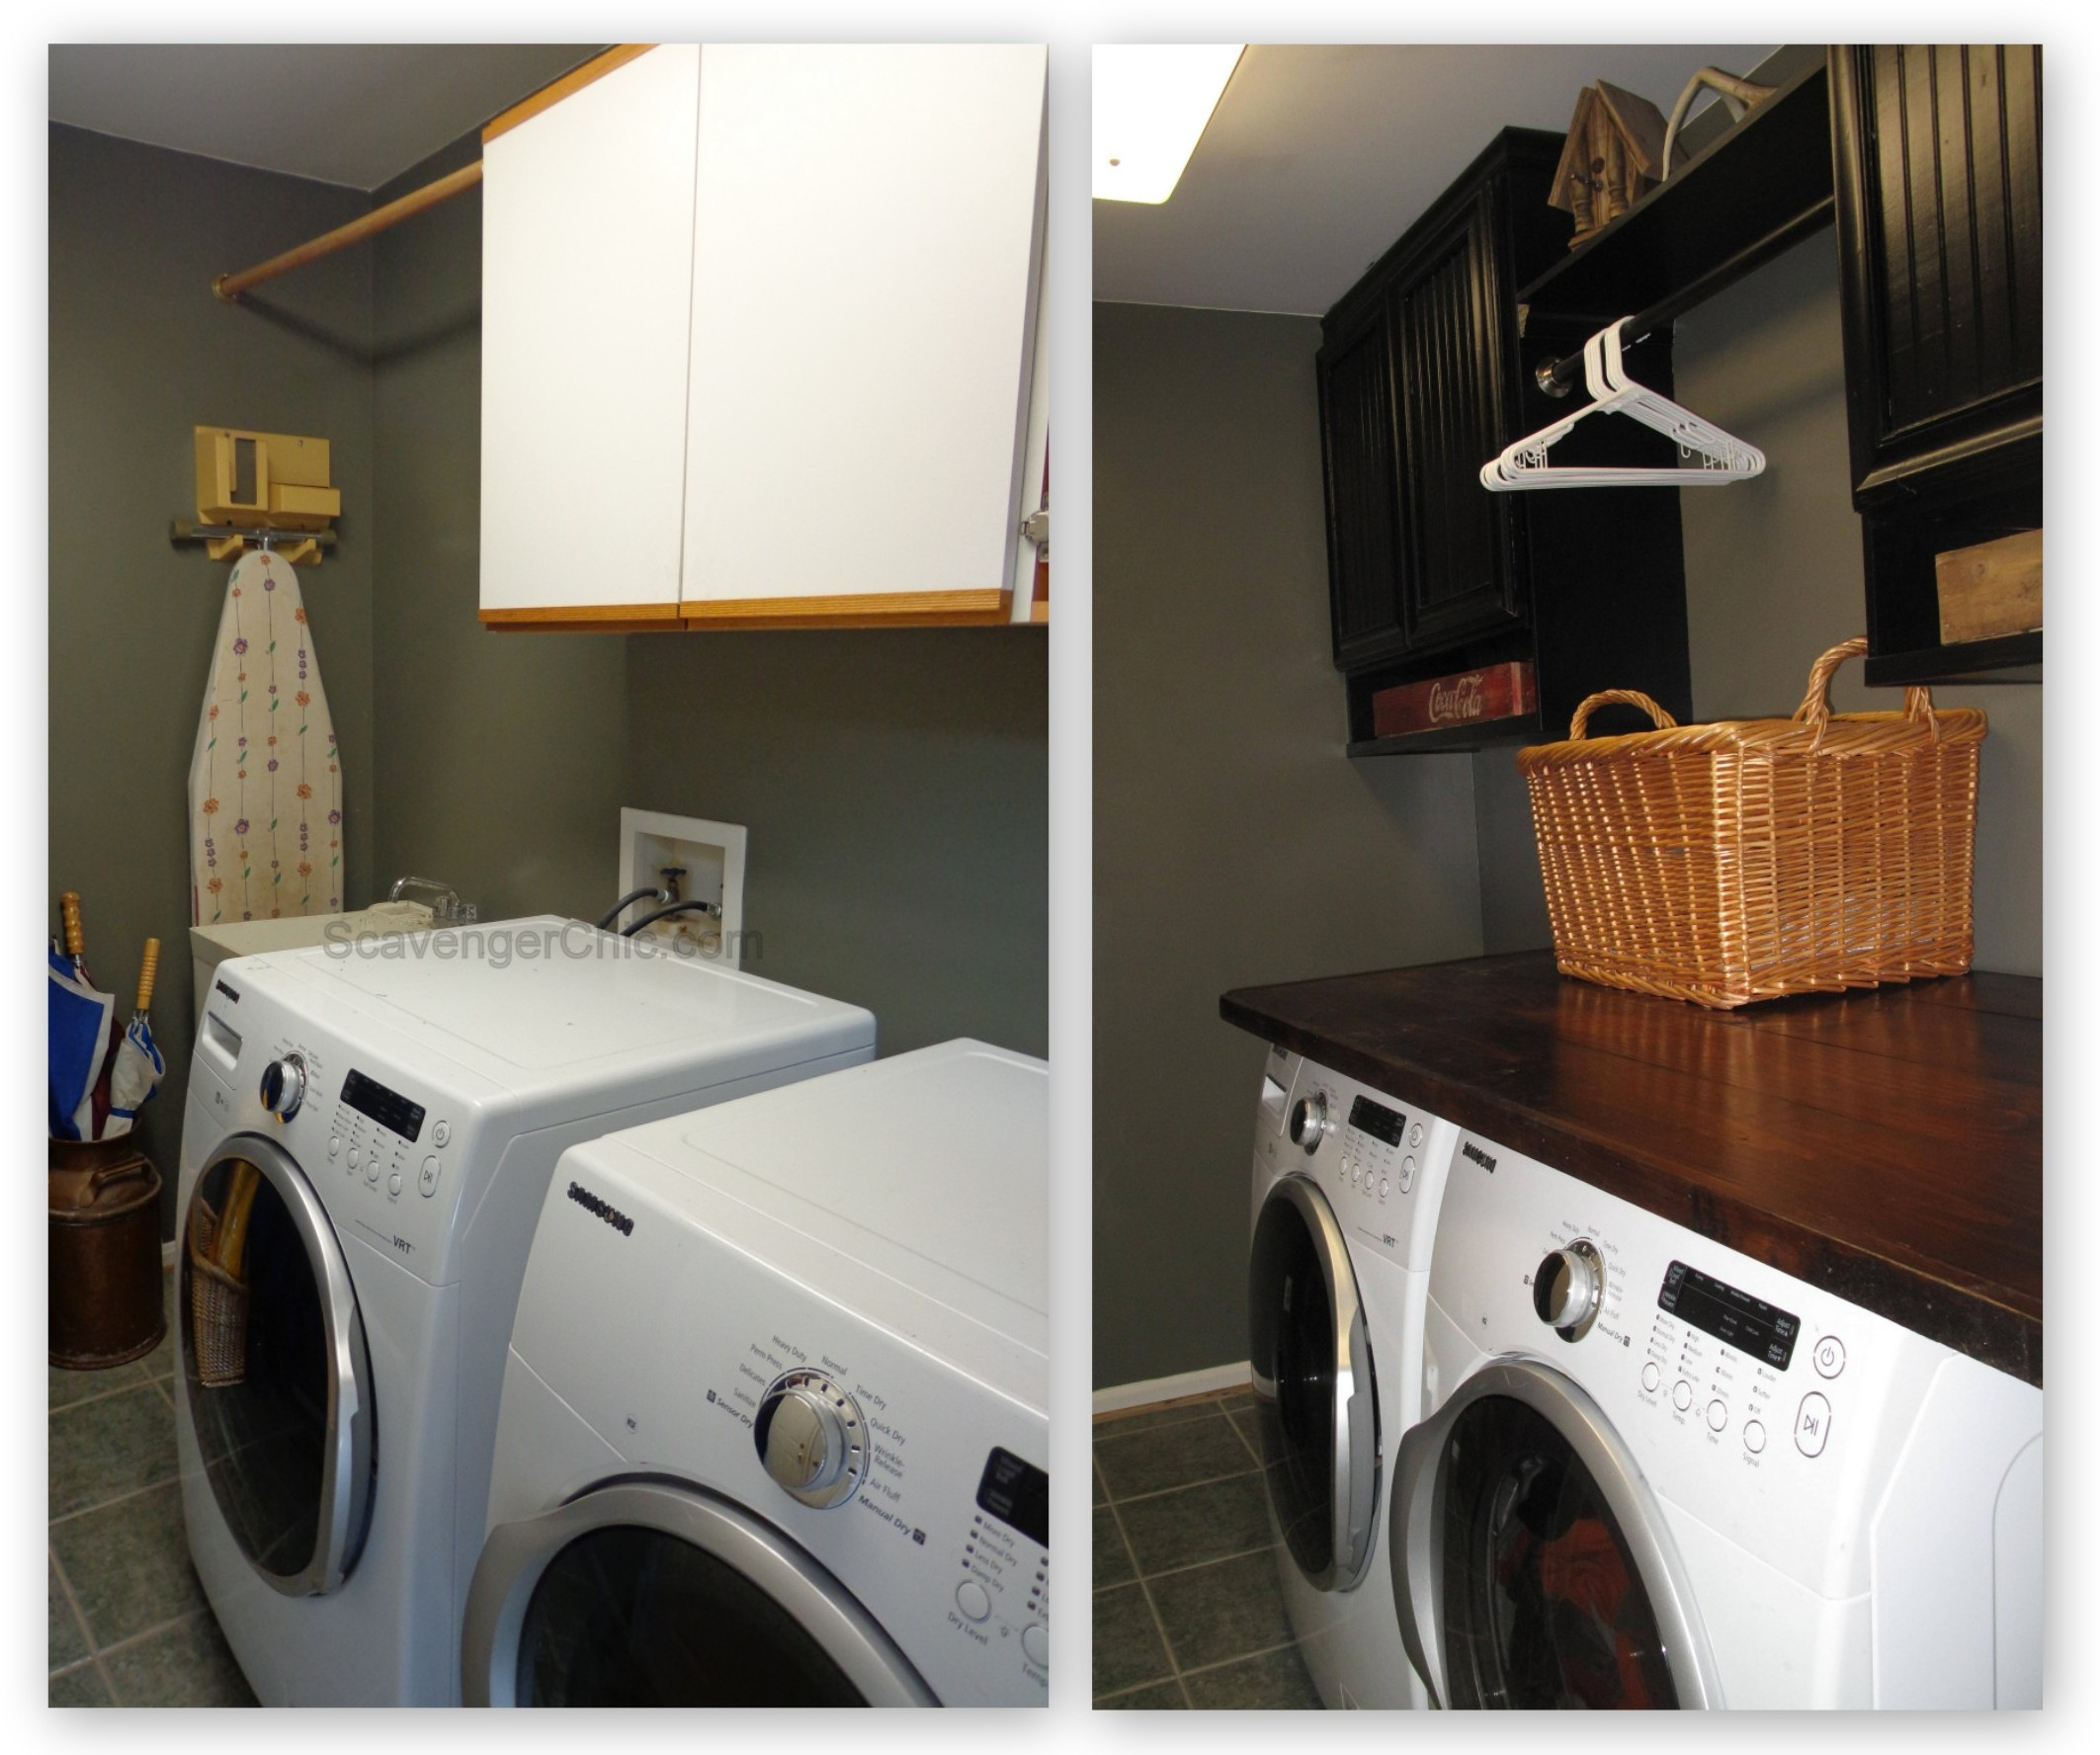 Countertop For Front Load Washer And Dryer - Wooden countertop diy